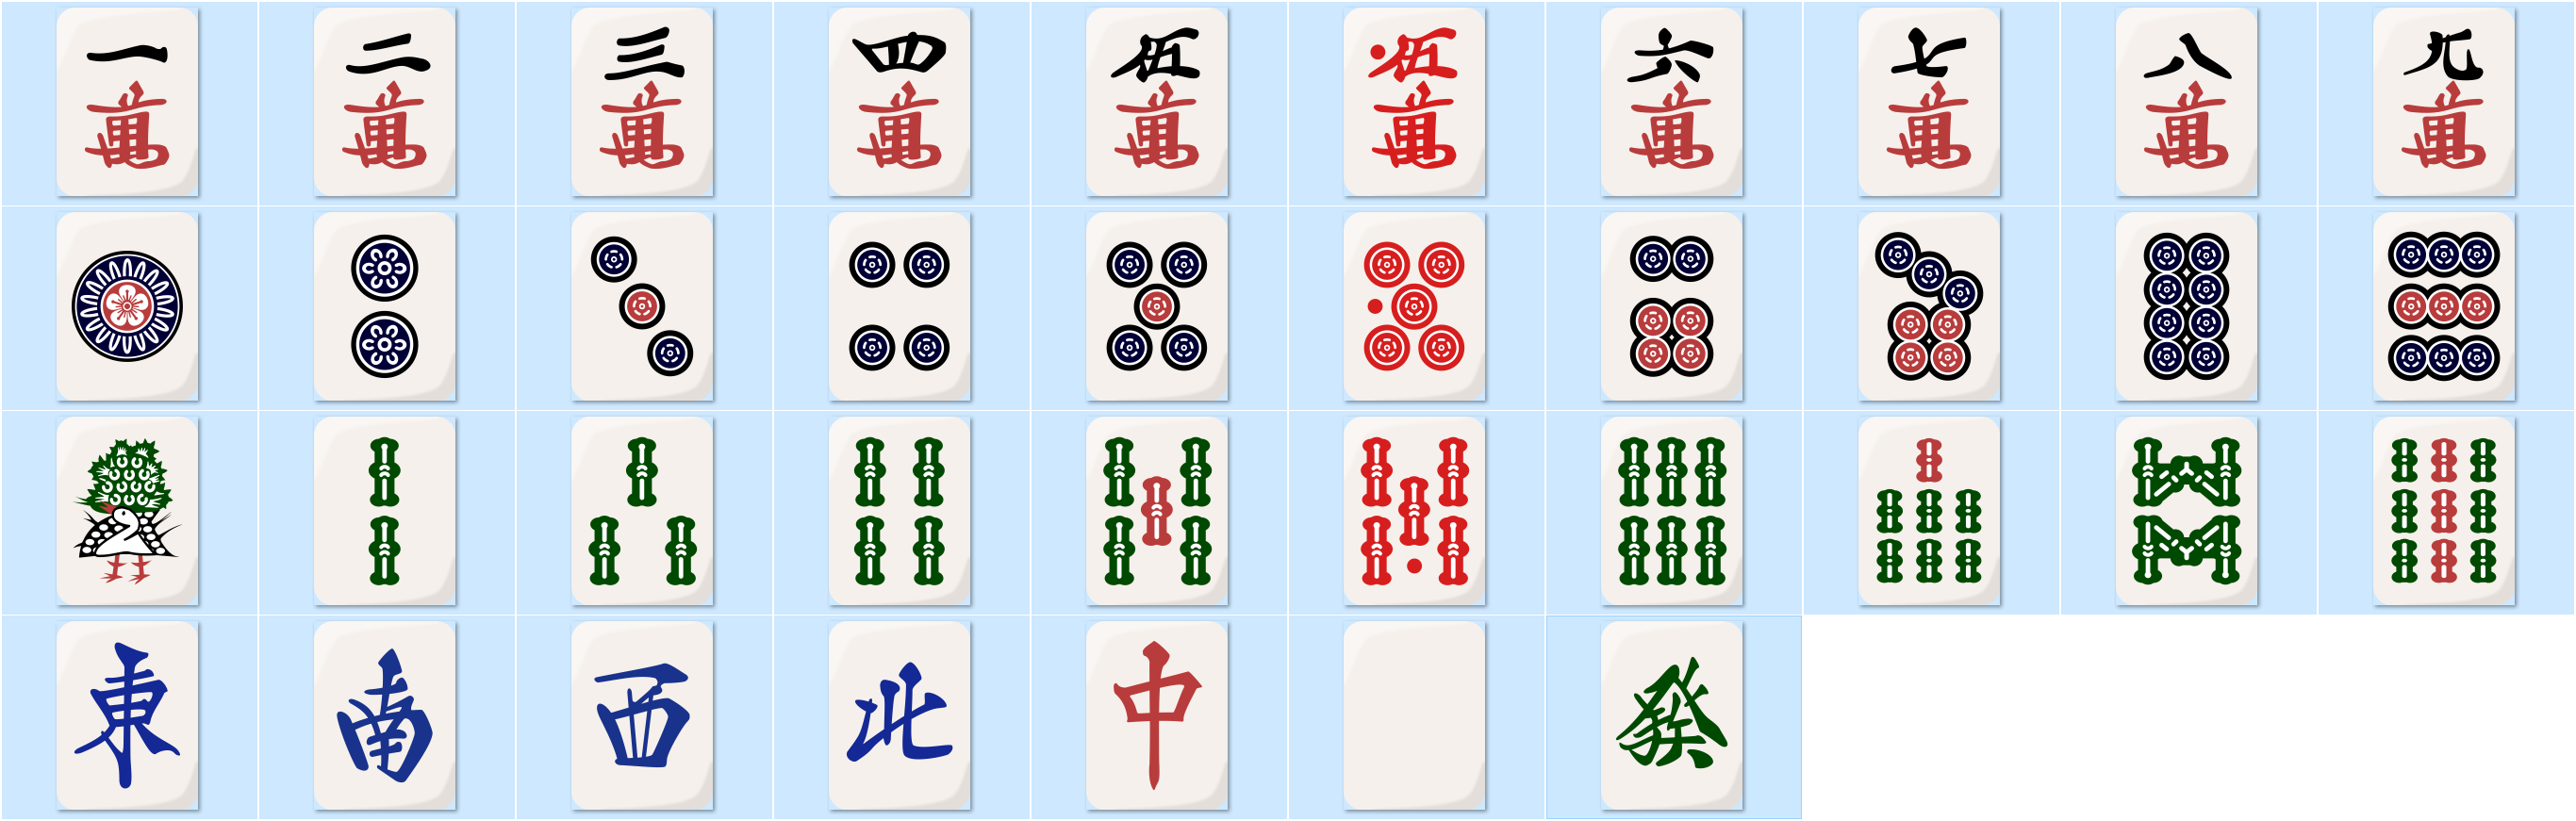 This repository contains vector graphics and PNG exports of riichi mahjong  tiles. The tiles are available in the regular and black variants. - Mah Jongg PNG